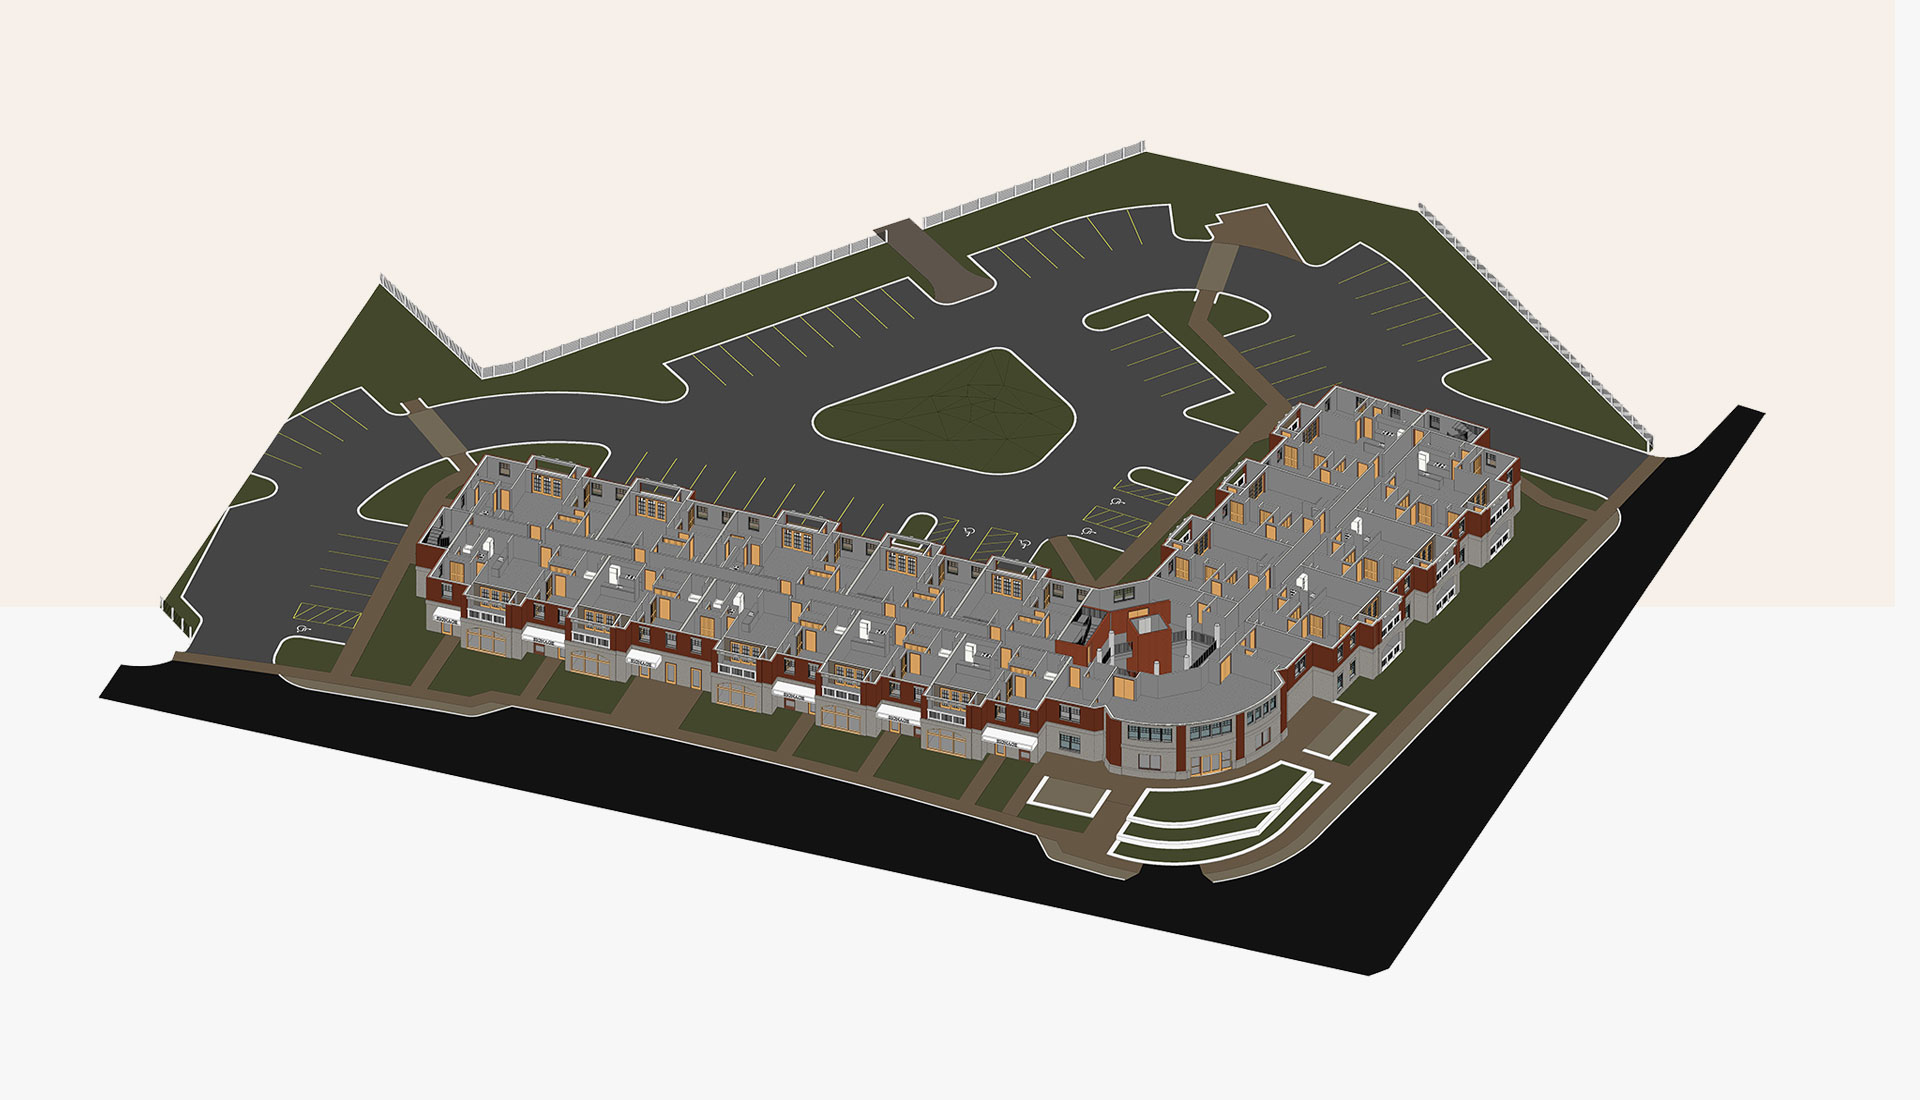 Sectional-View_Second-Floor_3D-BIM-Model_Residential-Project_Architectural-Revit-Modeling-by-United-BIM